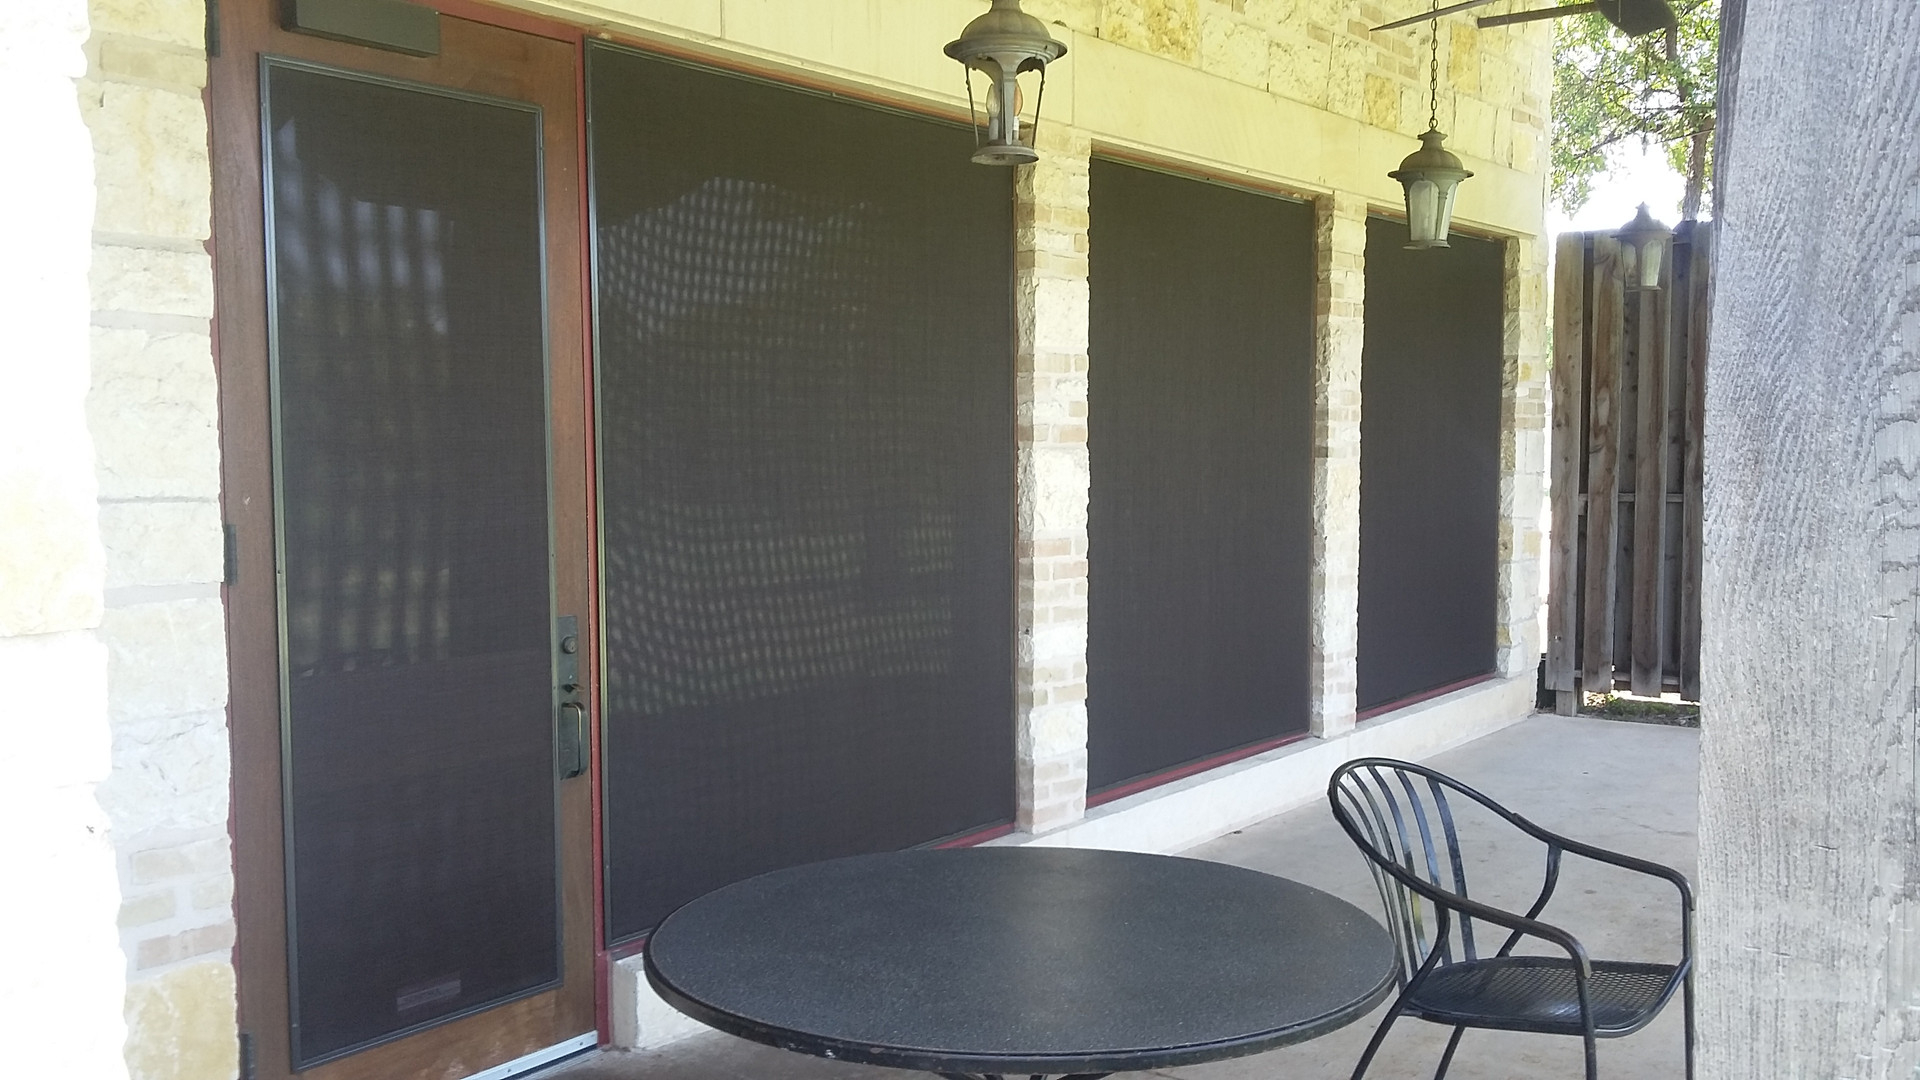 Round Rock La Margarita wearing Josh Hobbs solar window screens.